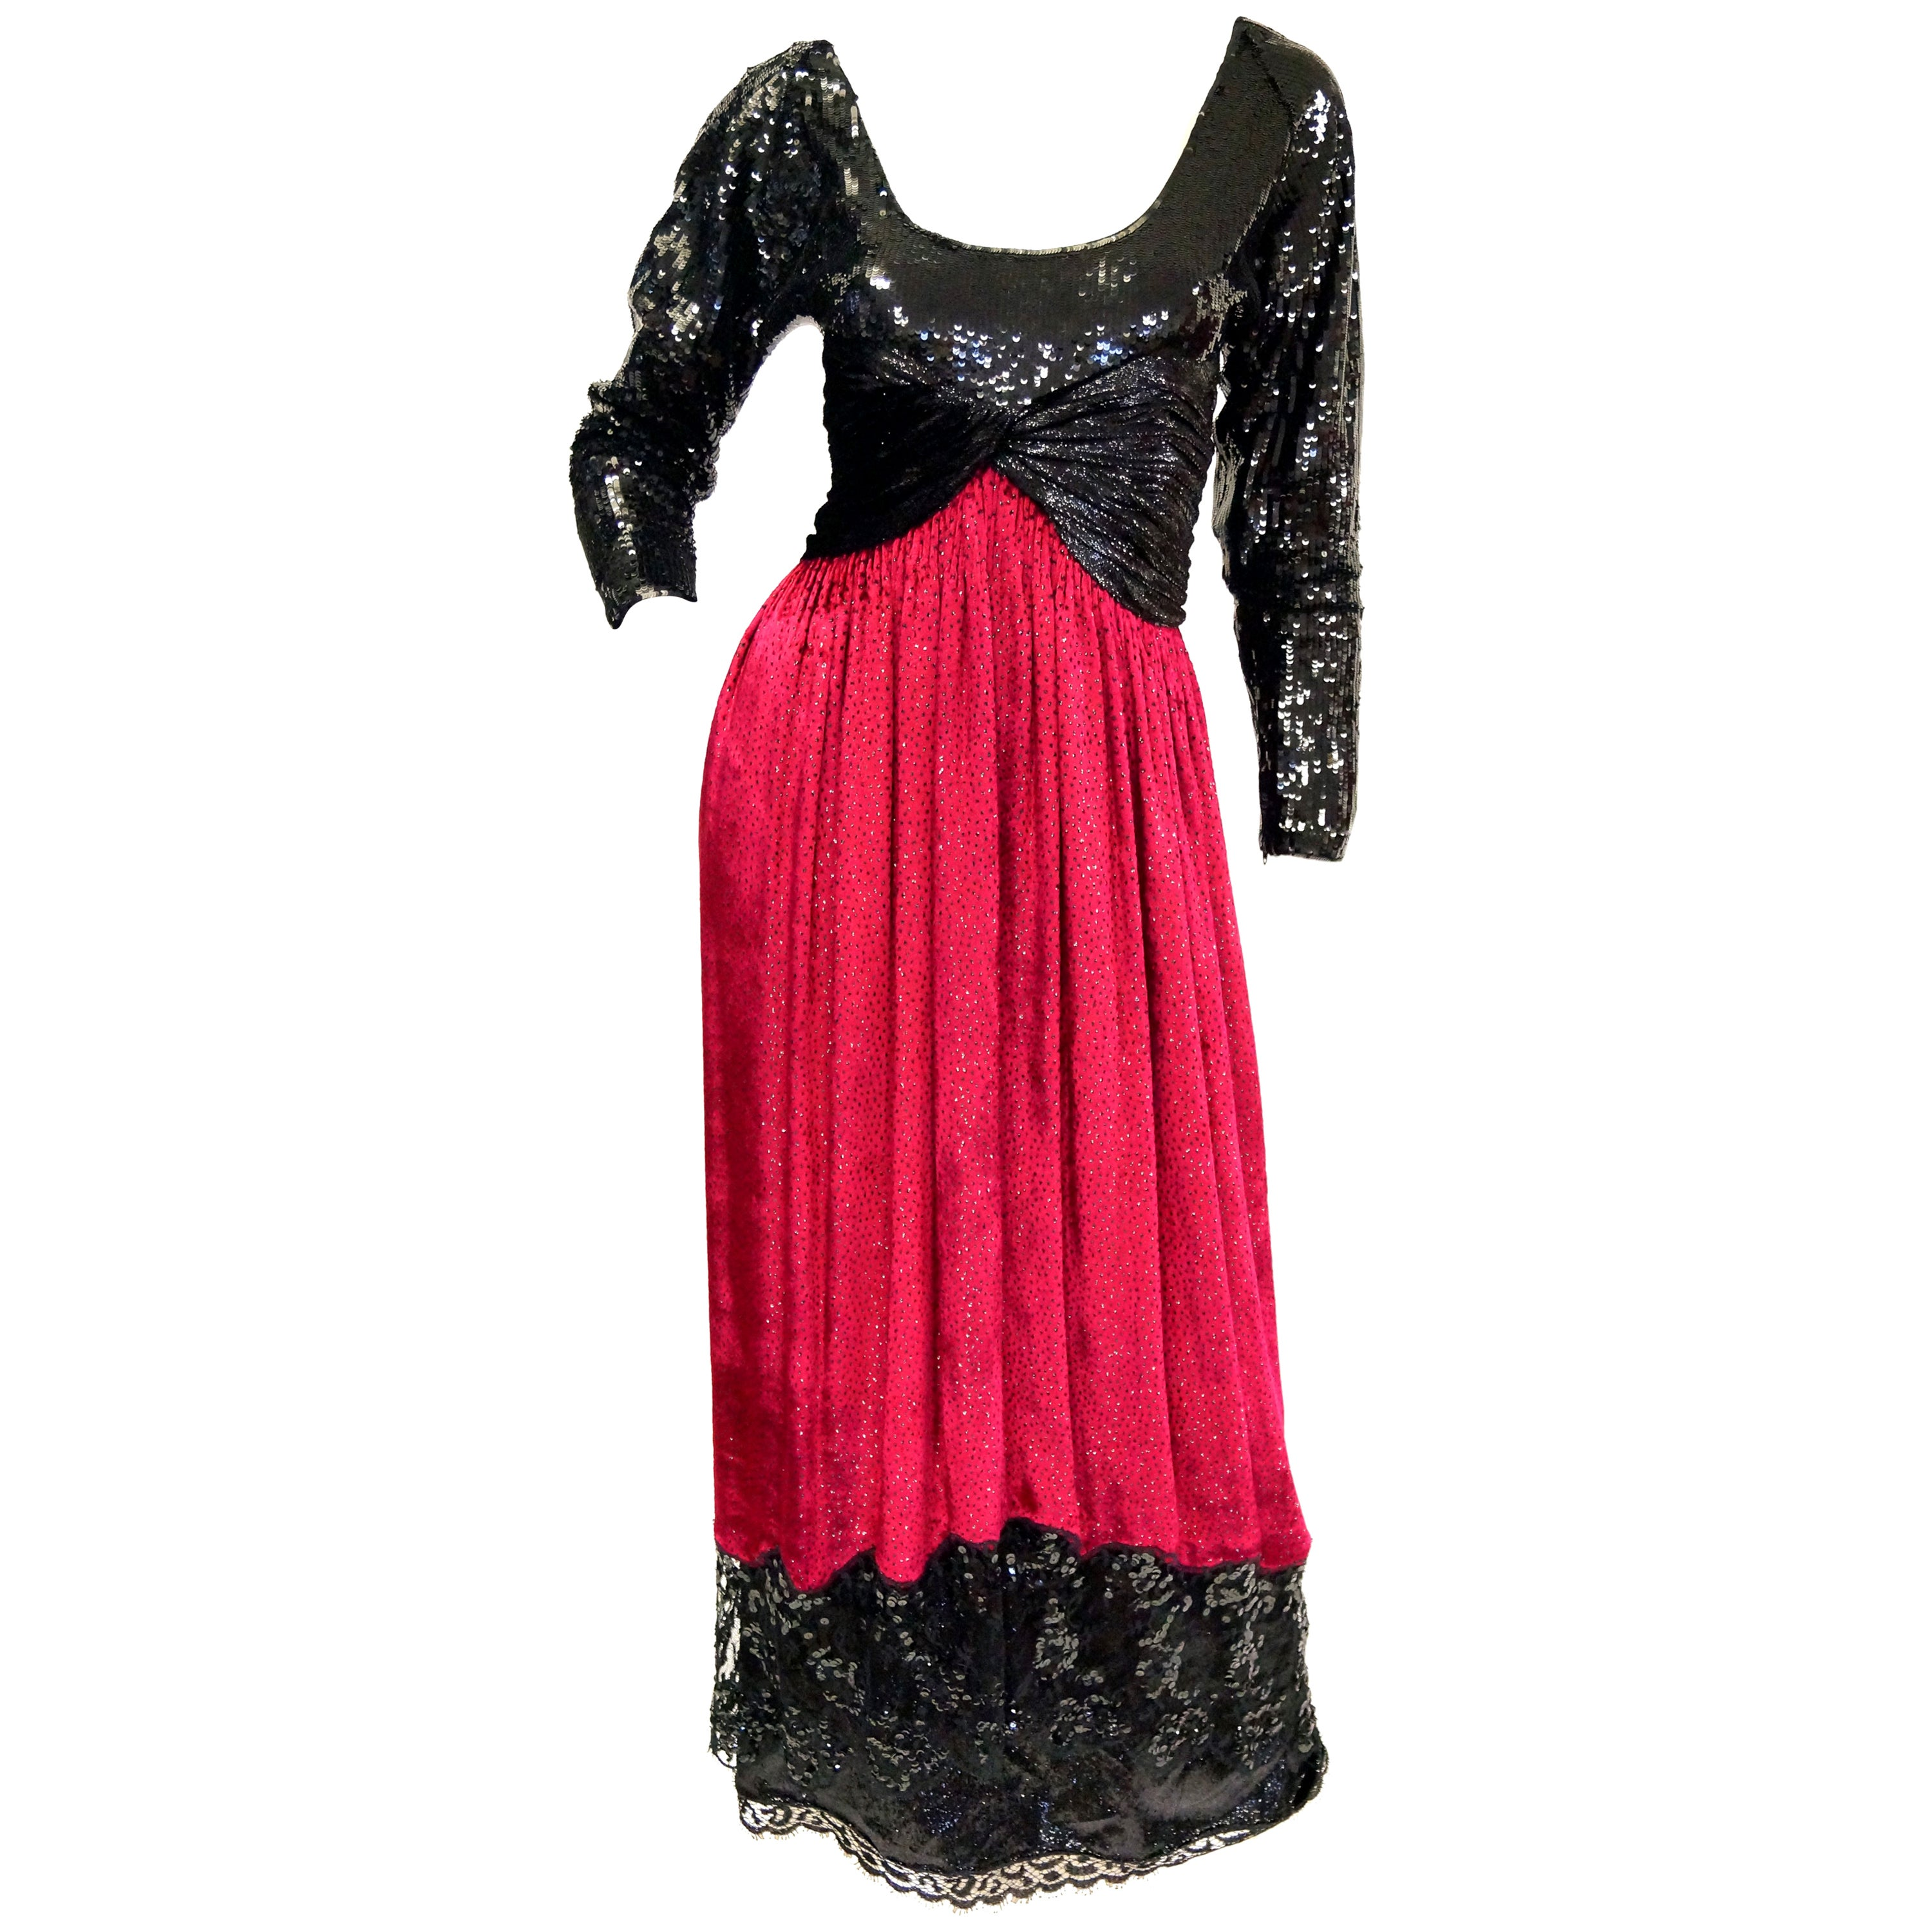 1980s Geoffrey Beene Black and Red Sequin, Lace, and Velvet Evening Dress 2